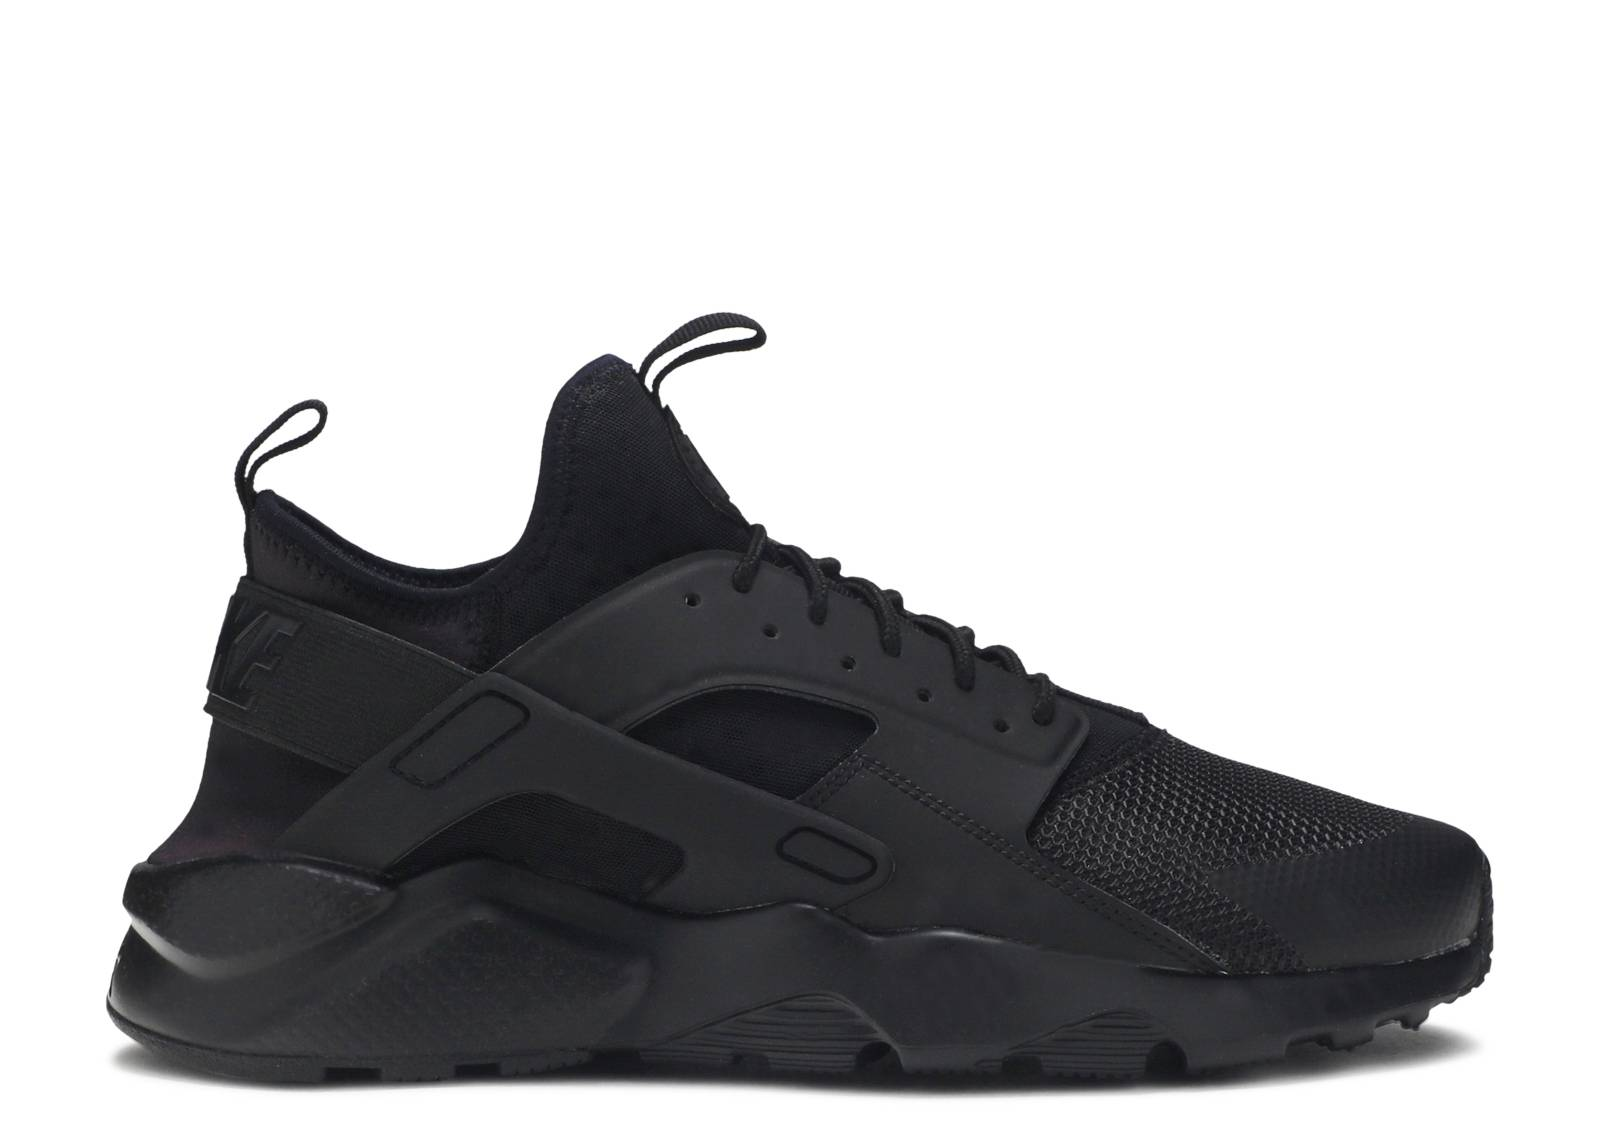 58a6ff577d4e0 Nike Air Huarache Run Ultra - Nike - 819685 002 - black/black-black ...